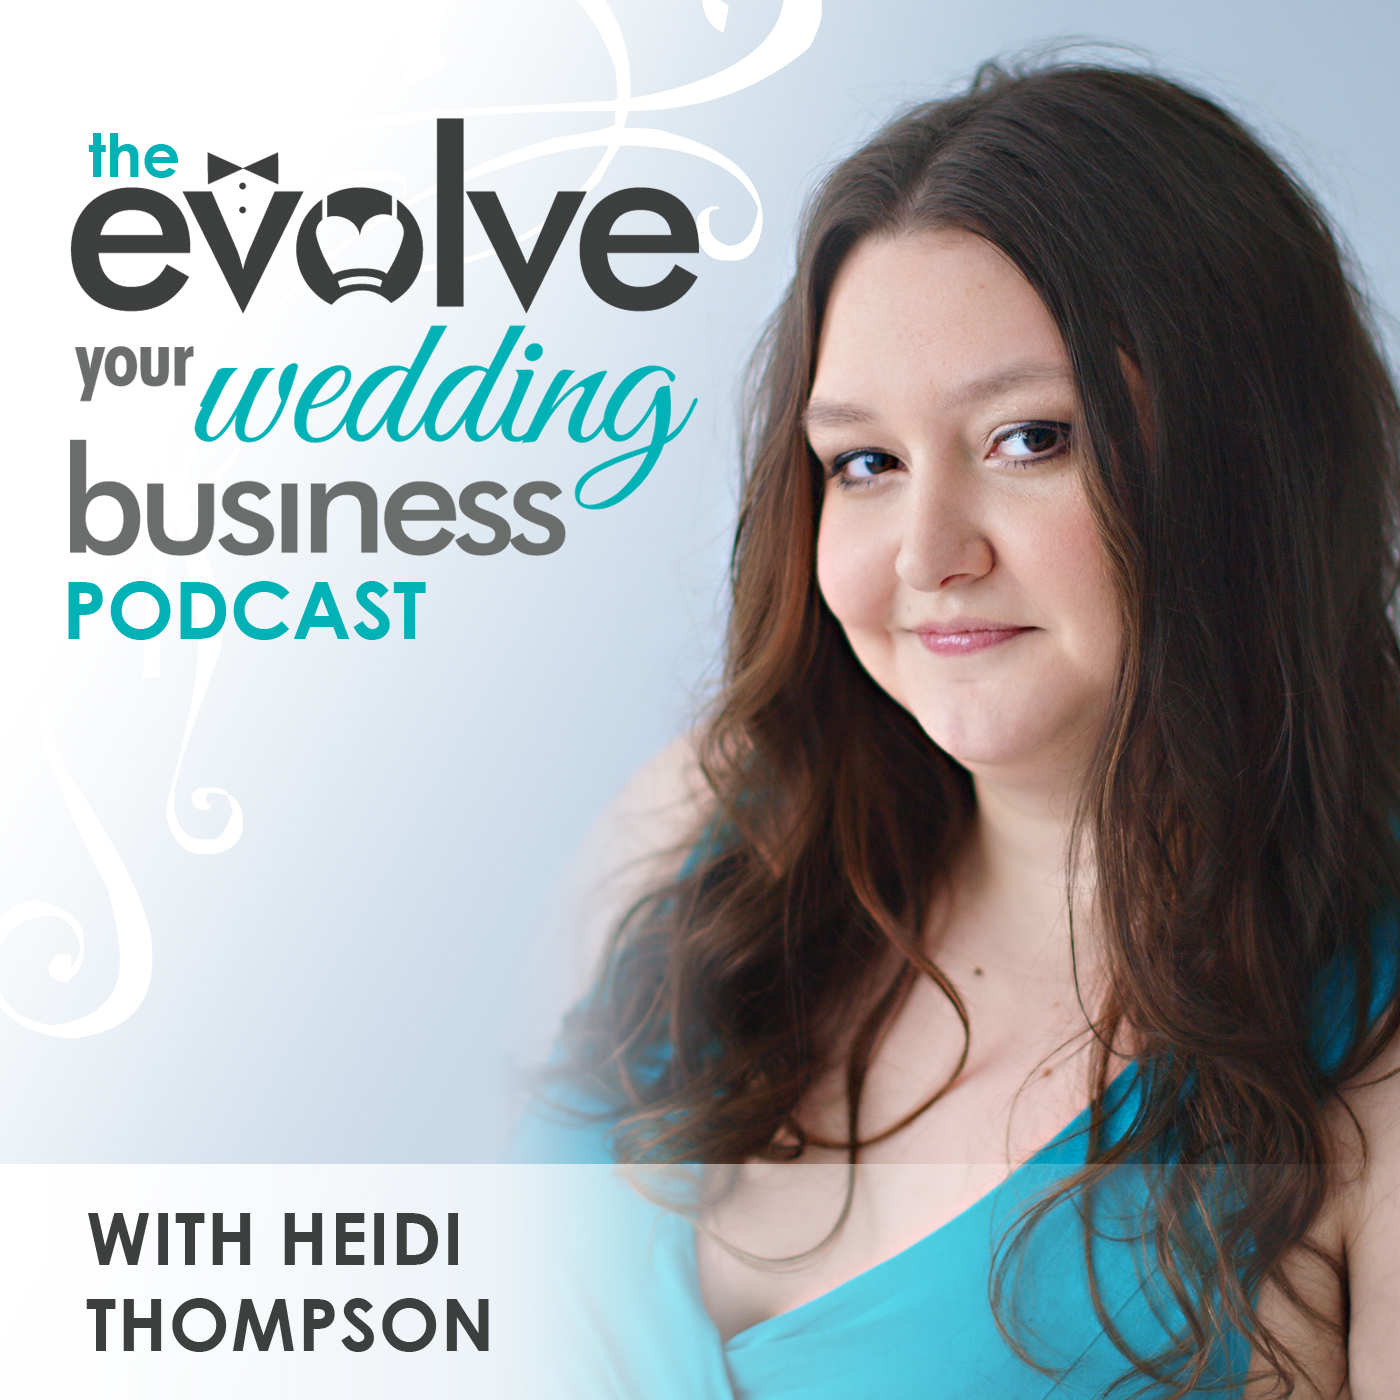 The Evolve Your Wedding Business Podcast: Marketing For Your Wedding Business   Online Business